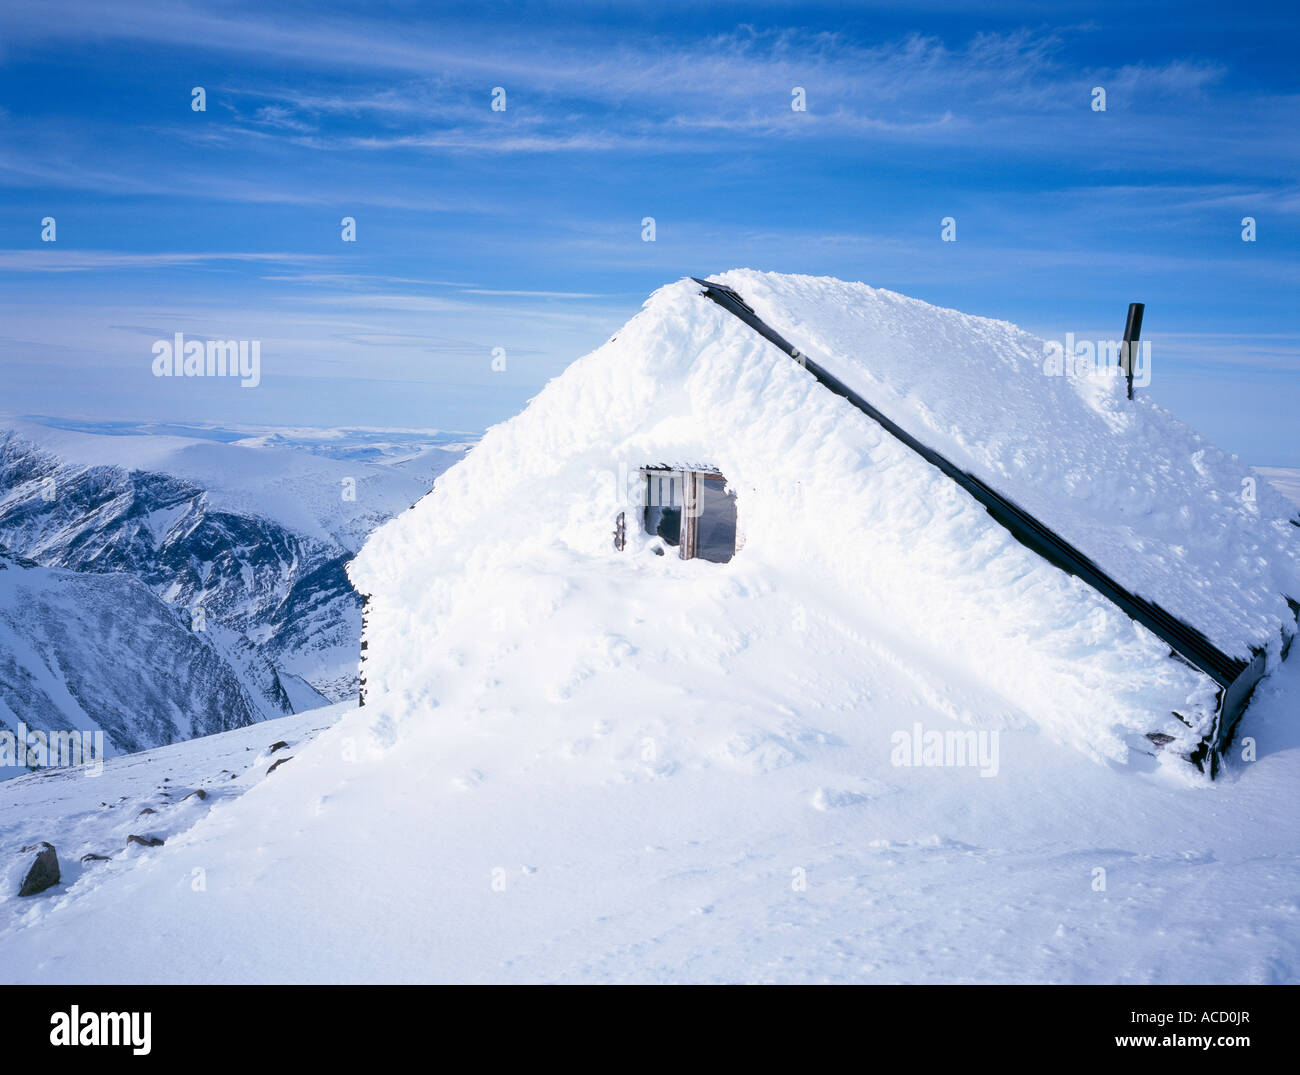 A snowed in cabin. - Stock Image